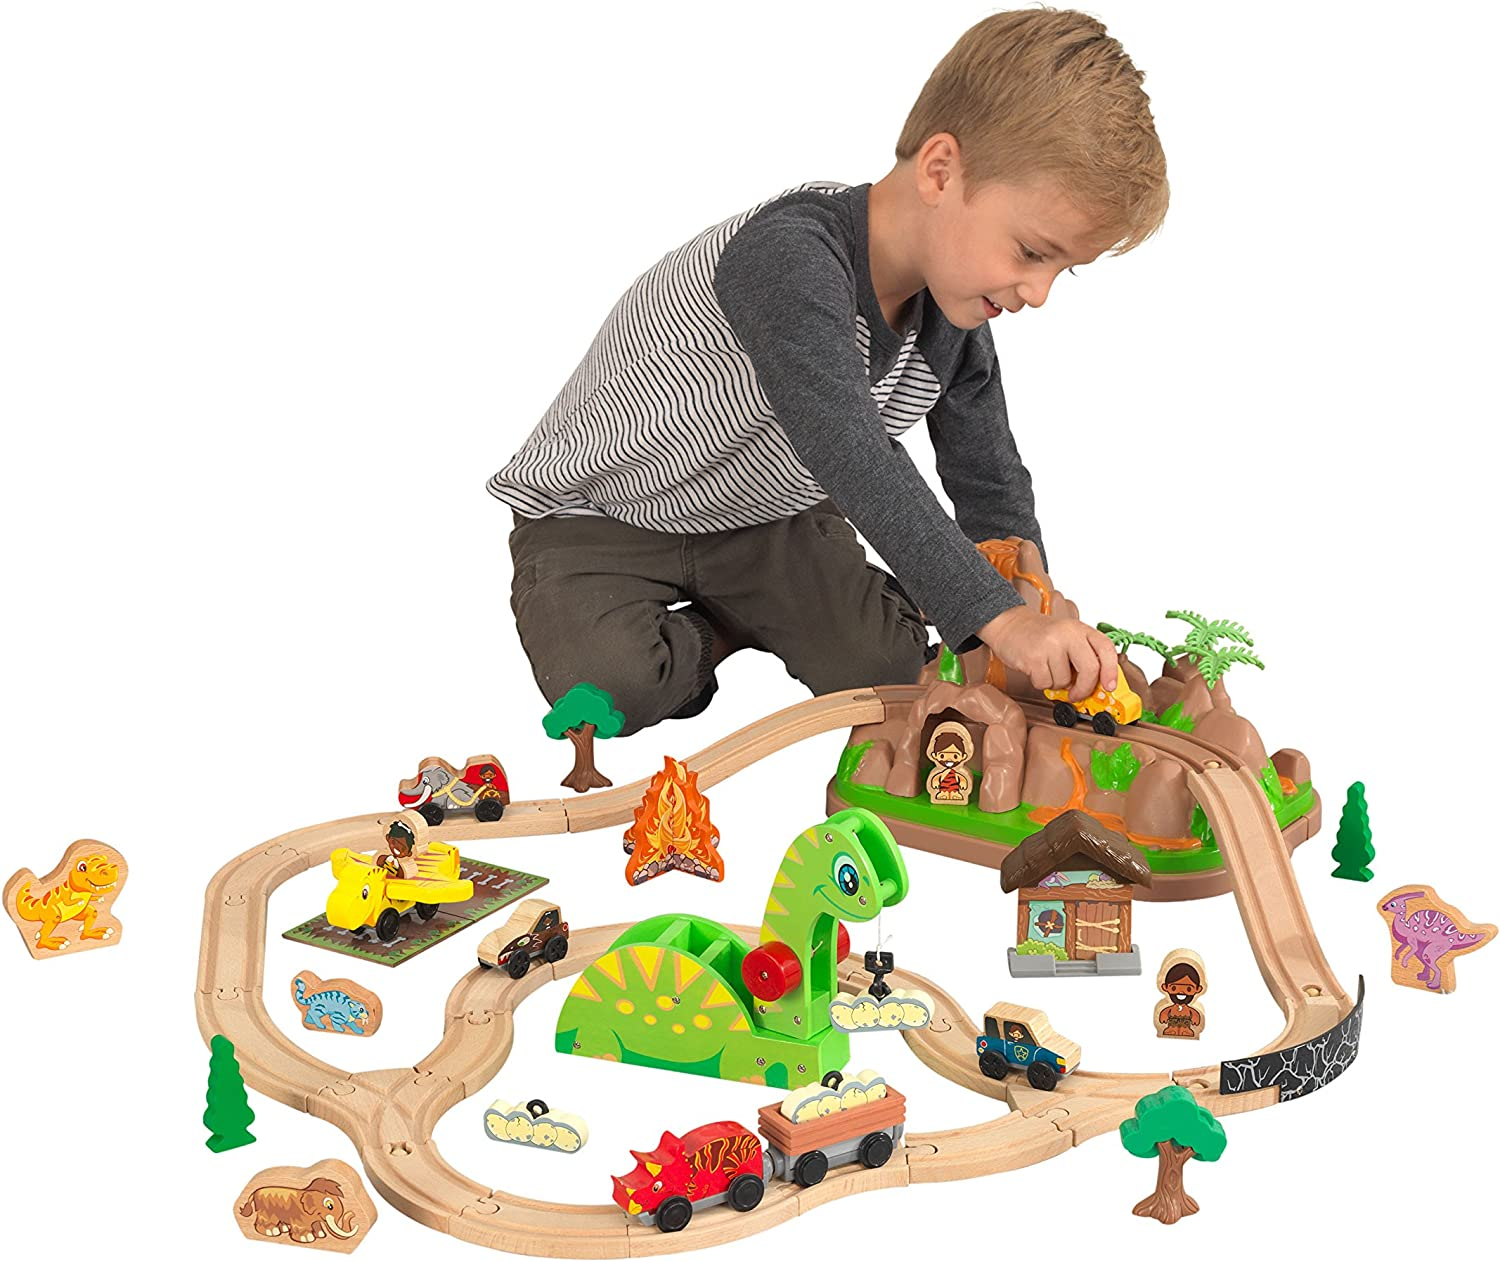 KidKraft 18016 Bucket Top Dinosaur Wooden Train Track Set for kids, classic railway with accessories included (56 pcs)